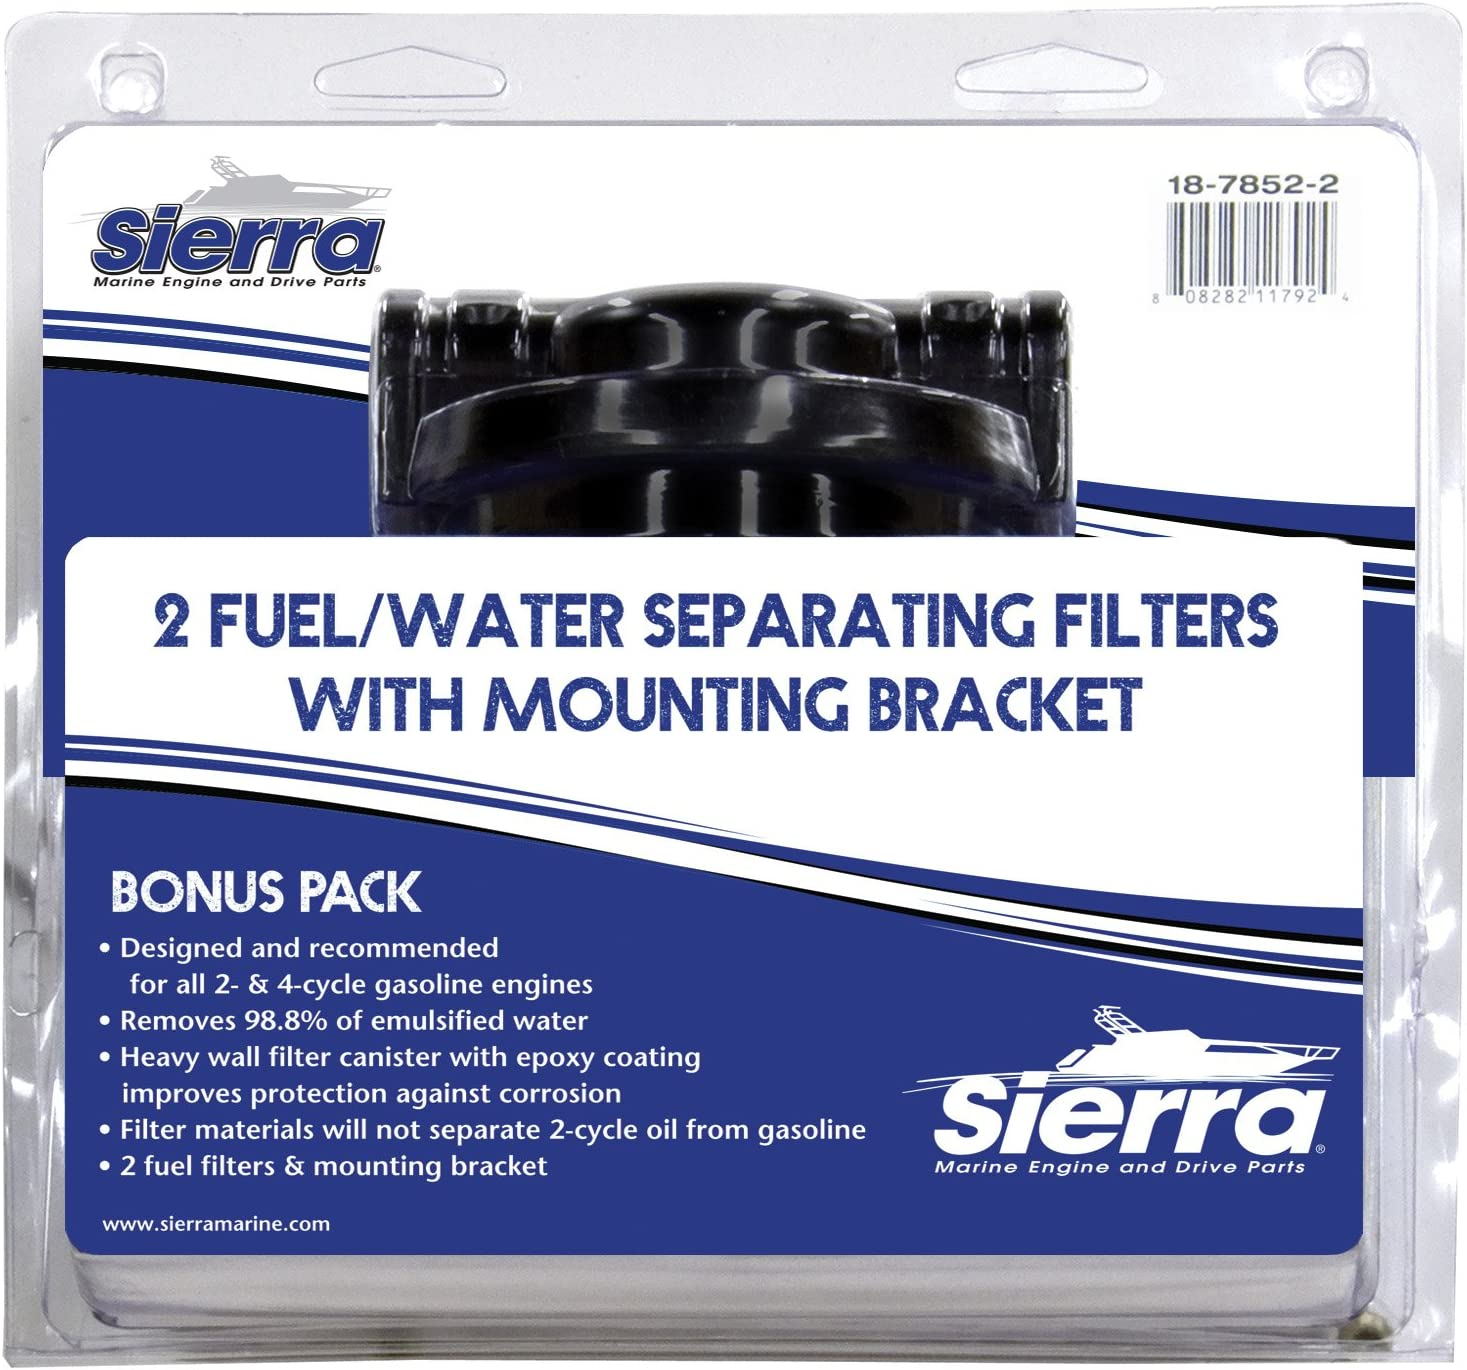 SIERRA 18-7845 FUEL WATER SEPARATOR FILTER 2 PACK SEALED NEW  FREE SHIPPING !!!